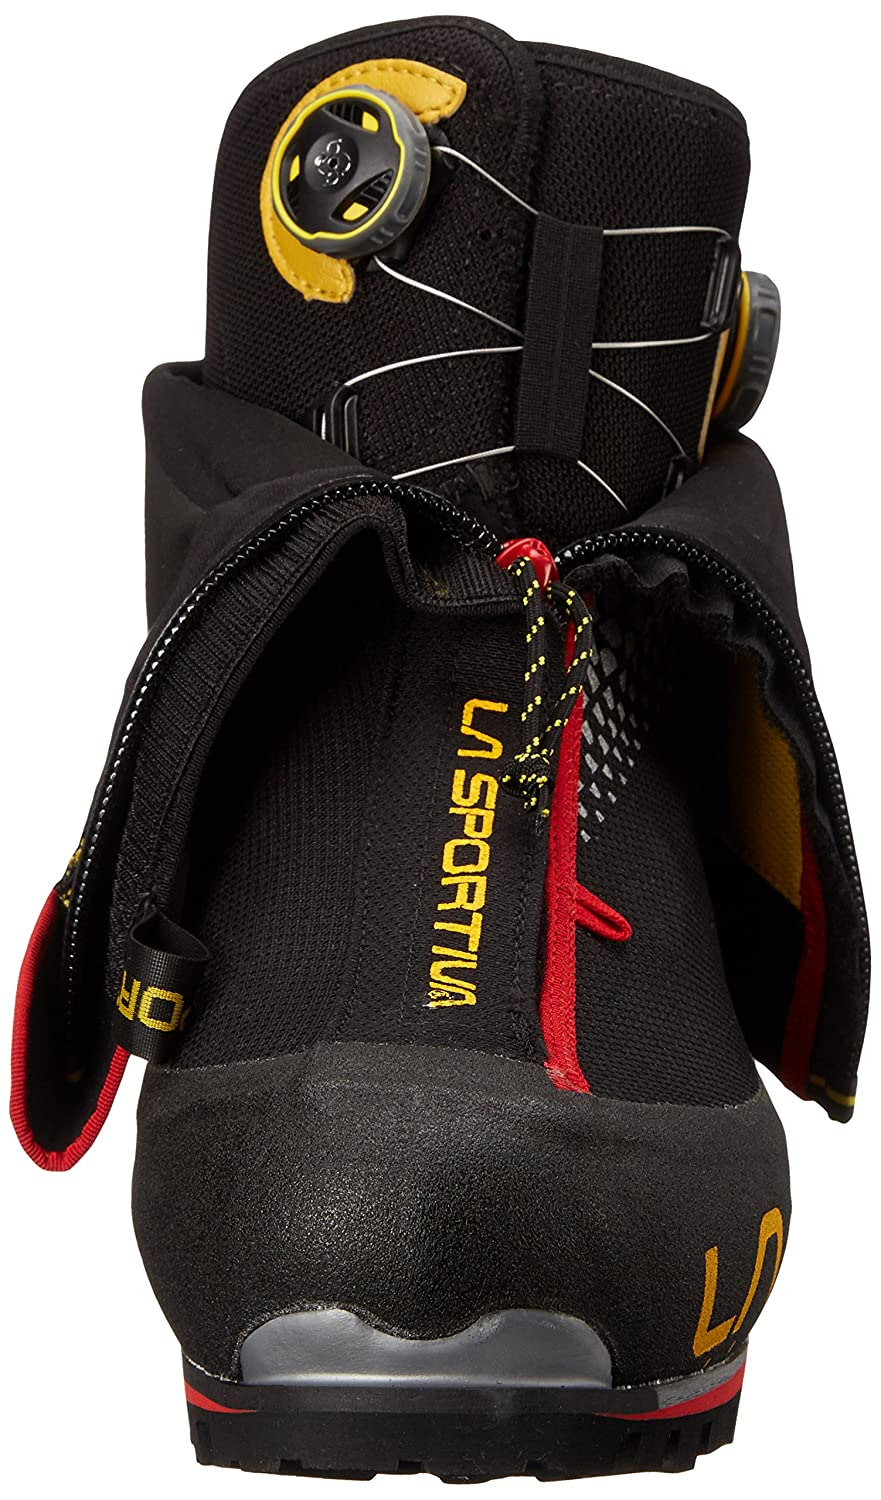 La Sportiva G2 SM Boot Men's Mountain Climbing Mountaineering Boot SM B00QUO2TUO 50 M EU|Black/Yellow 7ae63a